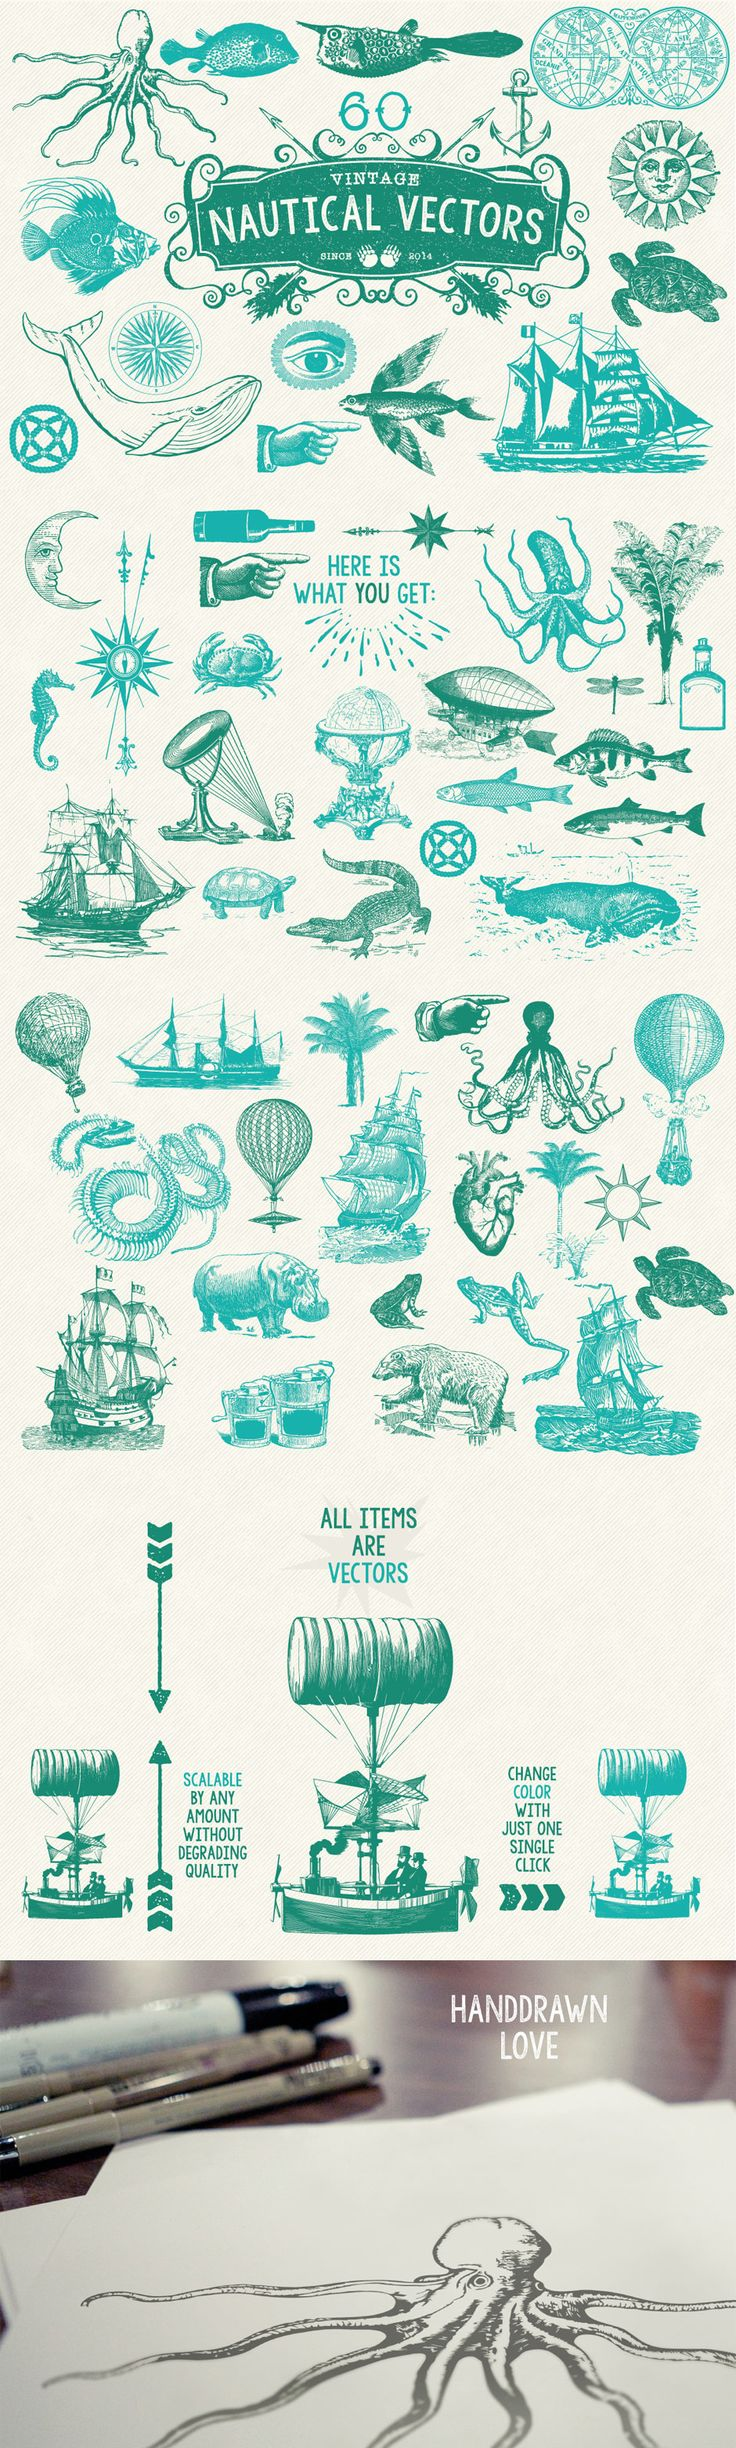 60 Vintage Nautical Vectors by MouseMade   The Comprehensive, Creative Vectors Bundle Mar 2015 from Design Cuts